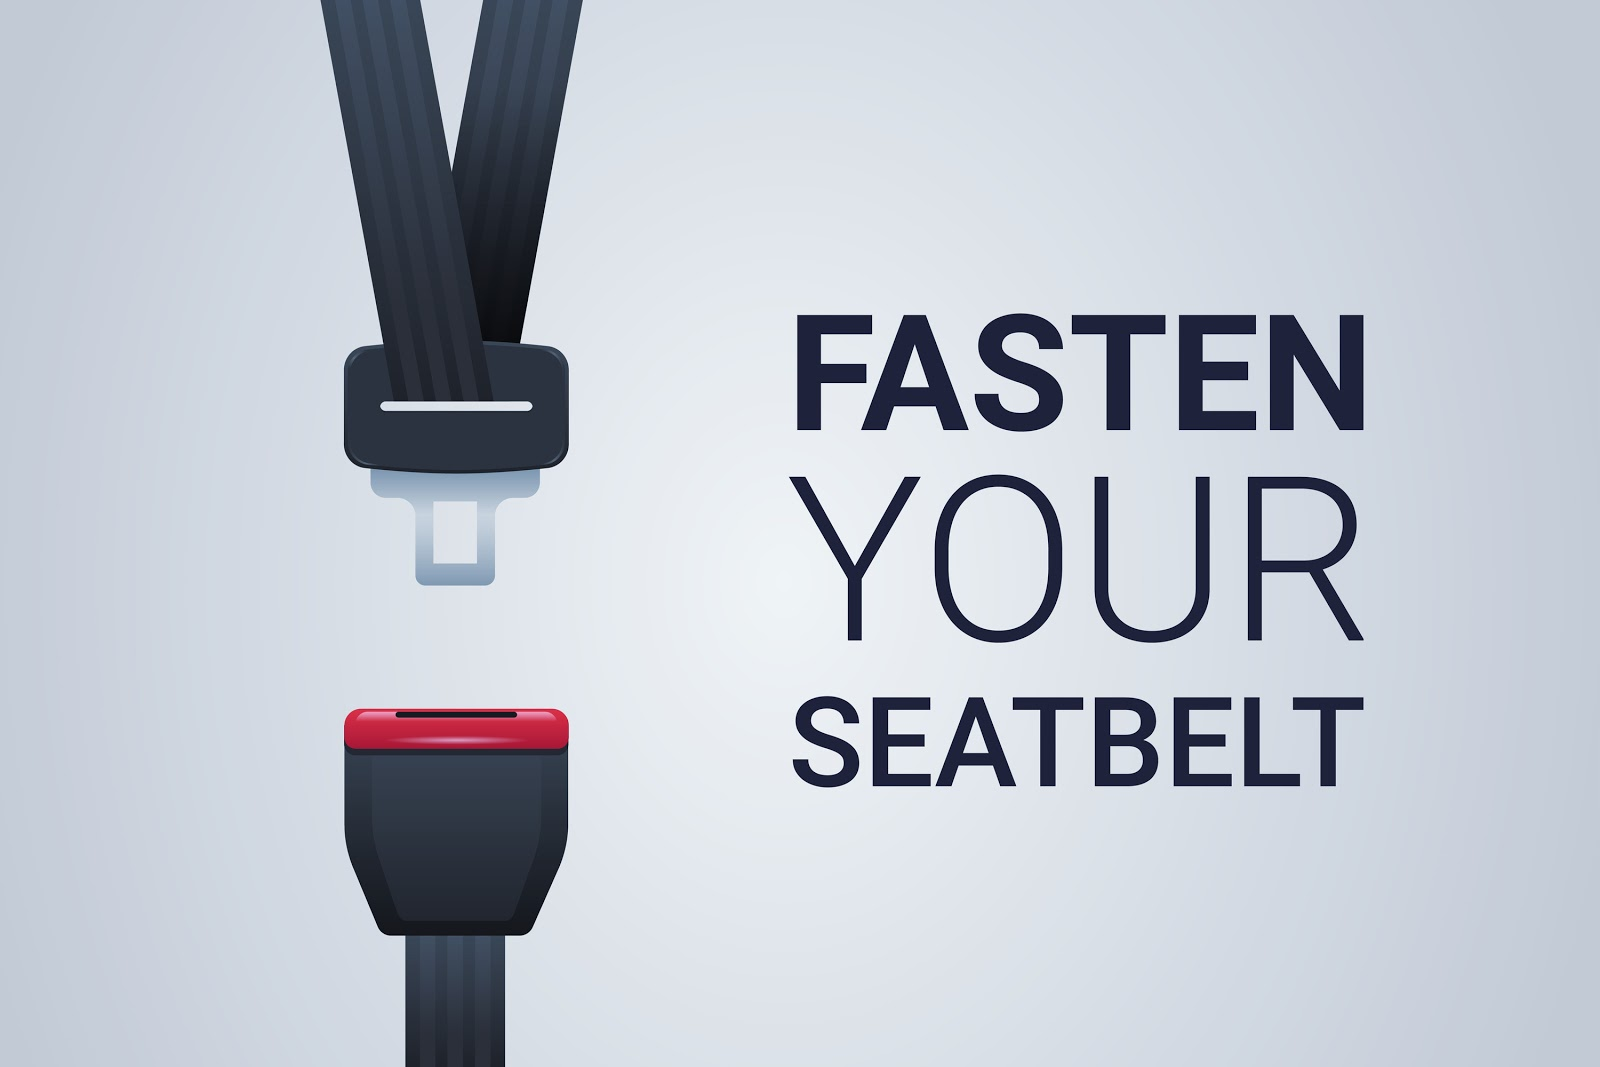 Fasten-Your-Seat-belt-Words-Seat-belt